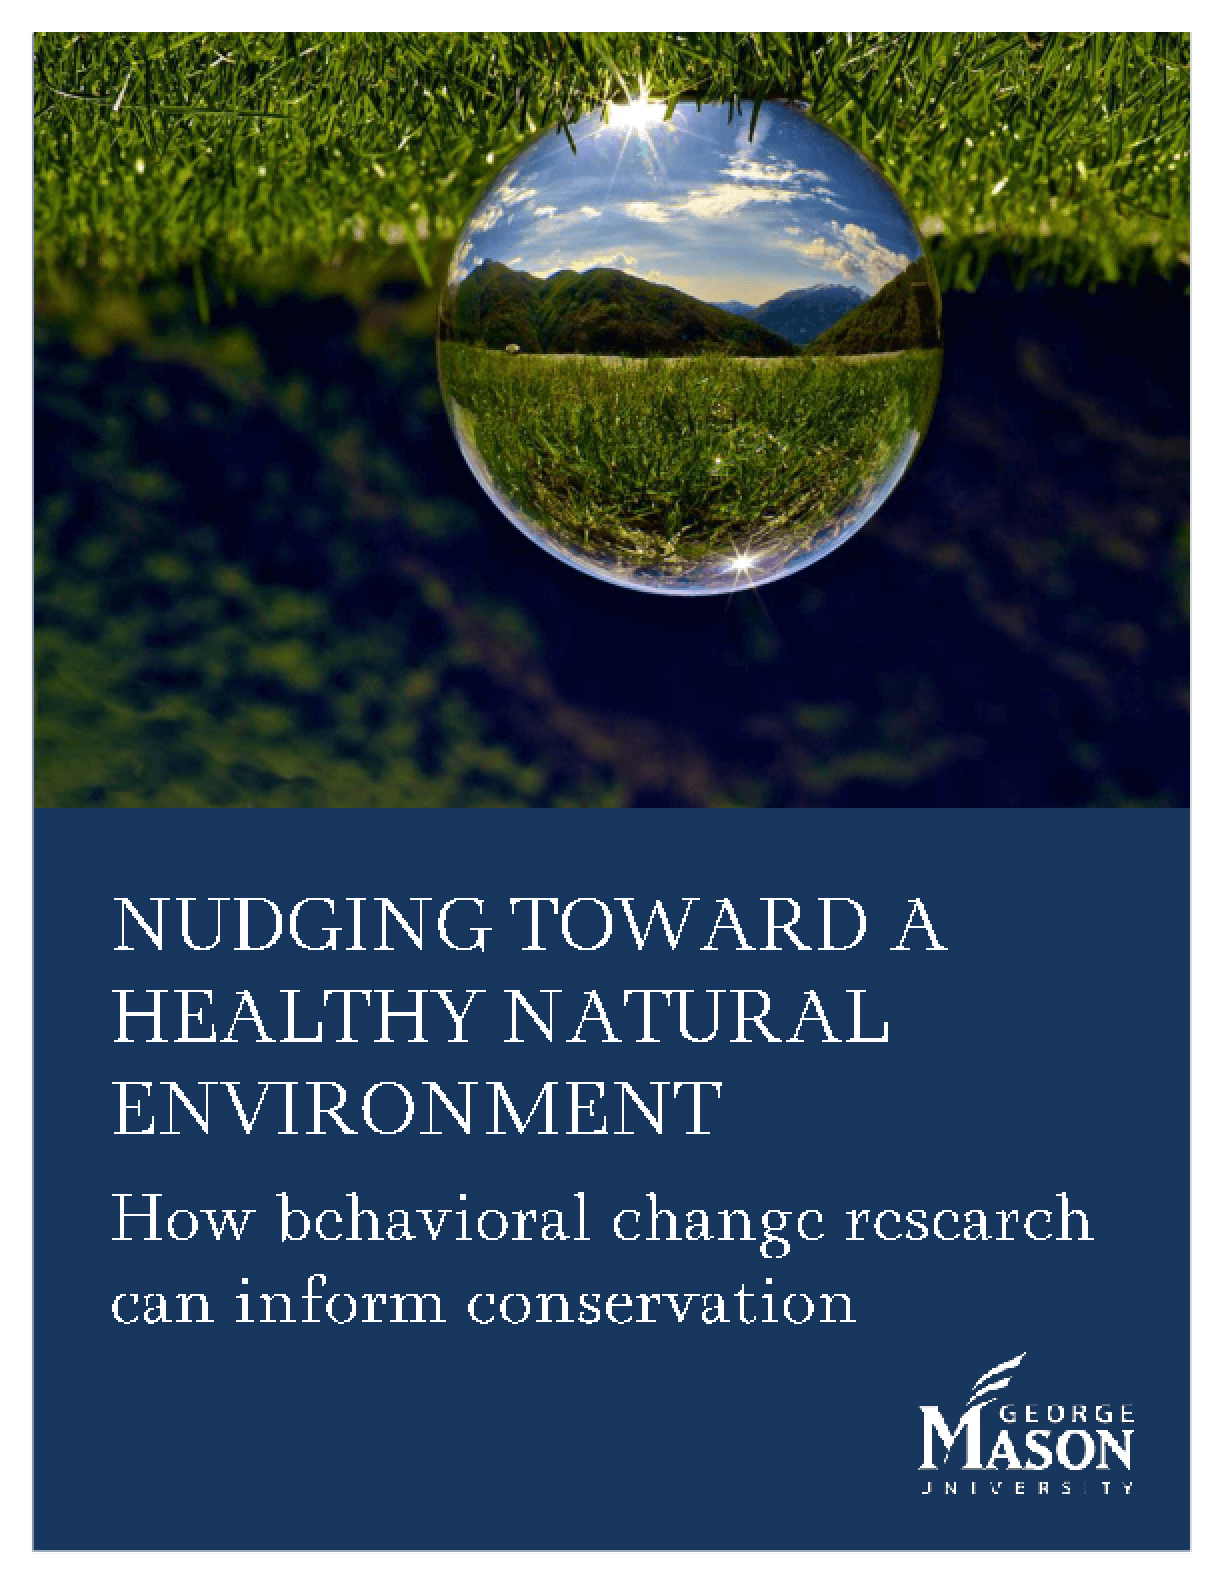 Nudging Toward a Healthy Natural Environment: How Behavioral Change Research Can Inform Conservation